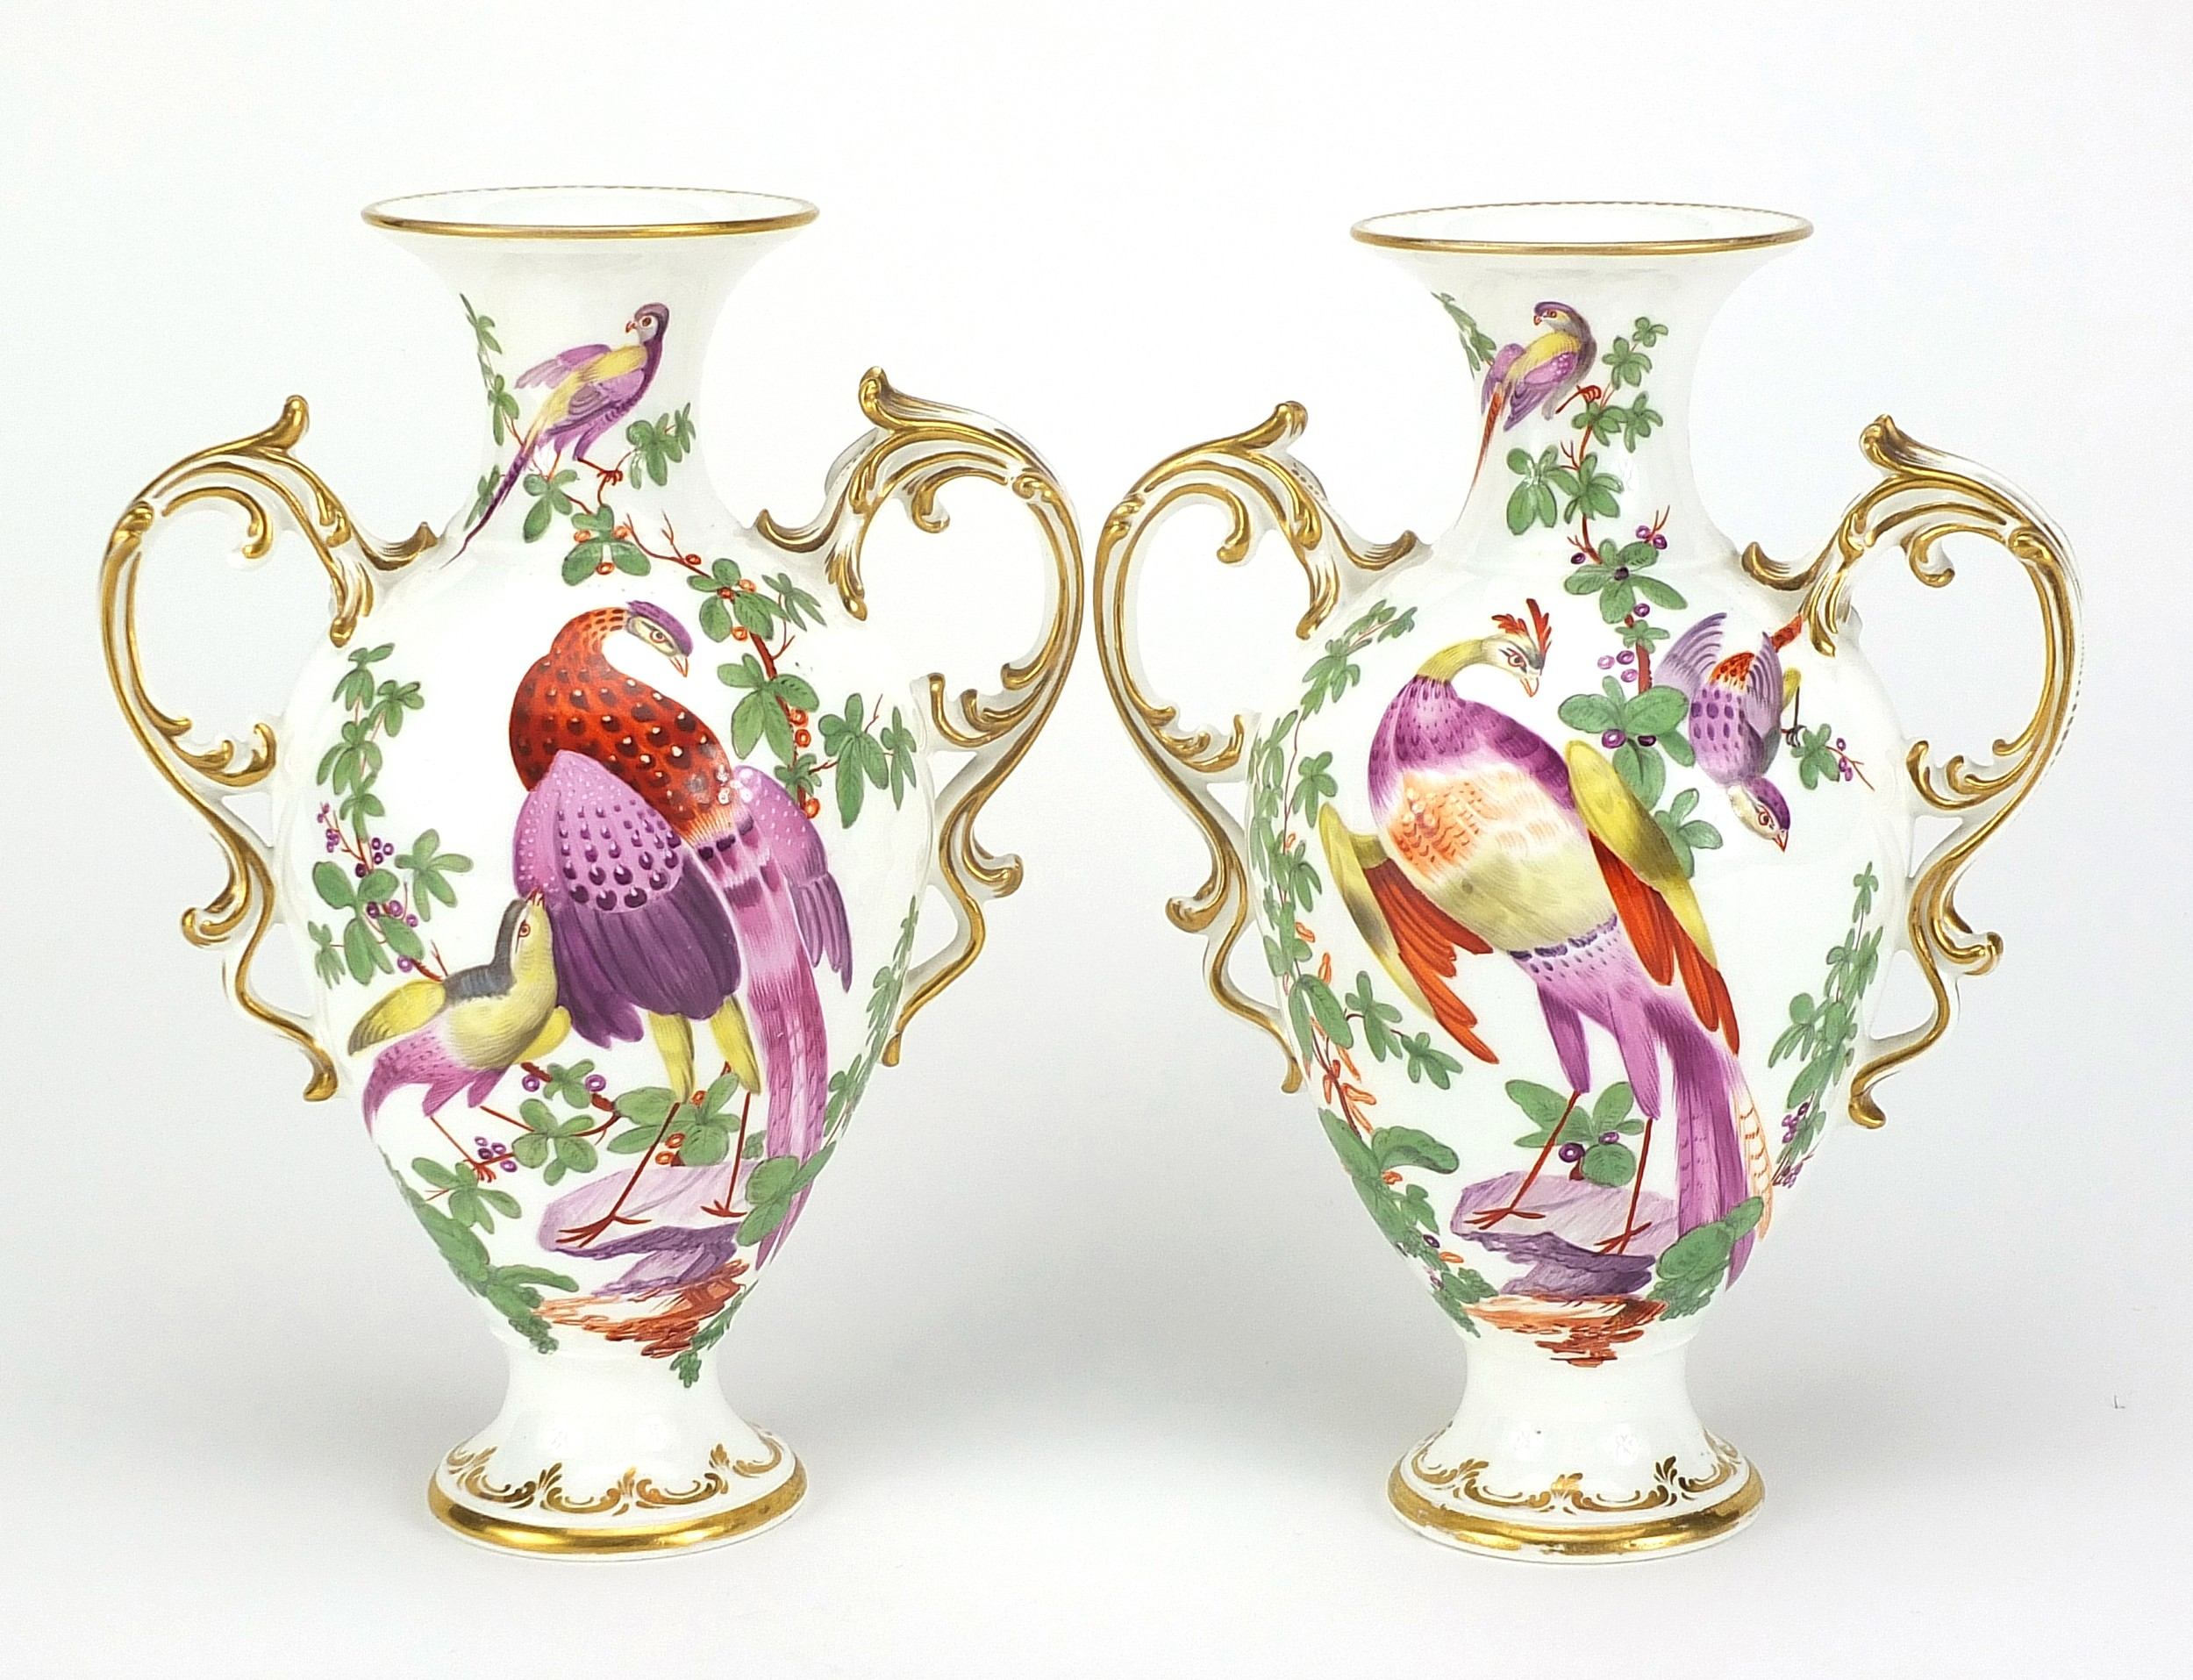 Pair of 19th century Chelsea style porcelain vases with twin handles, each hand painted with - Image 2 of 4